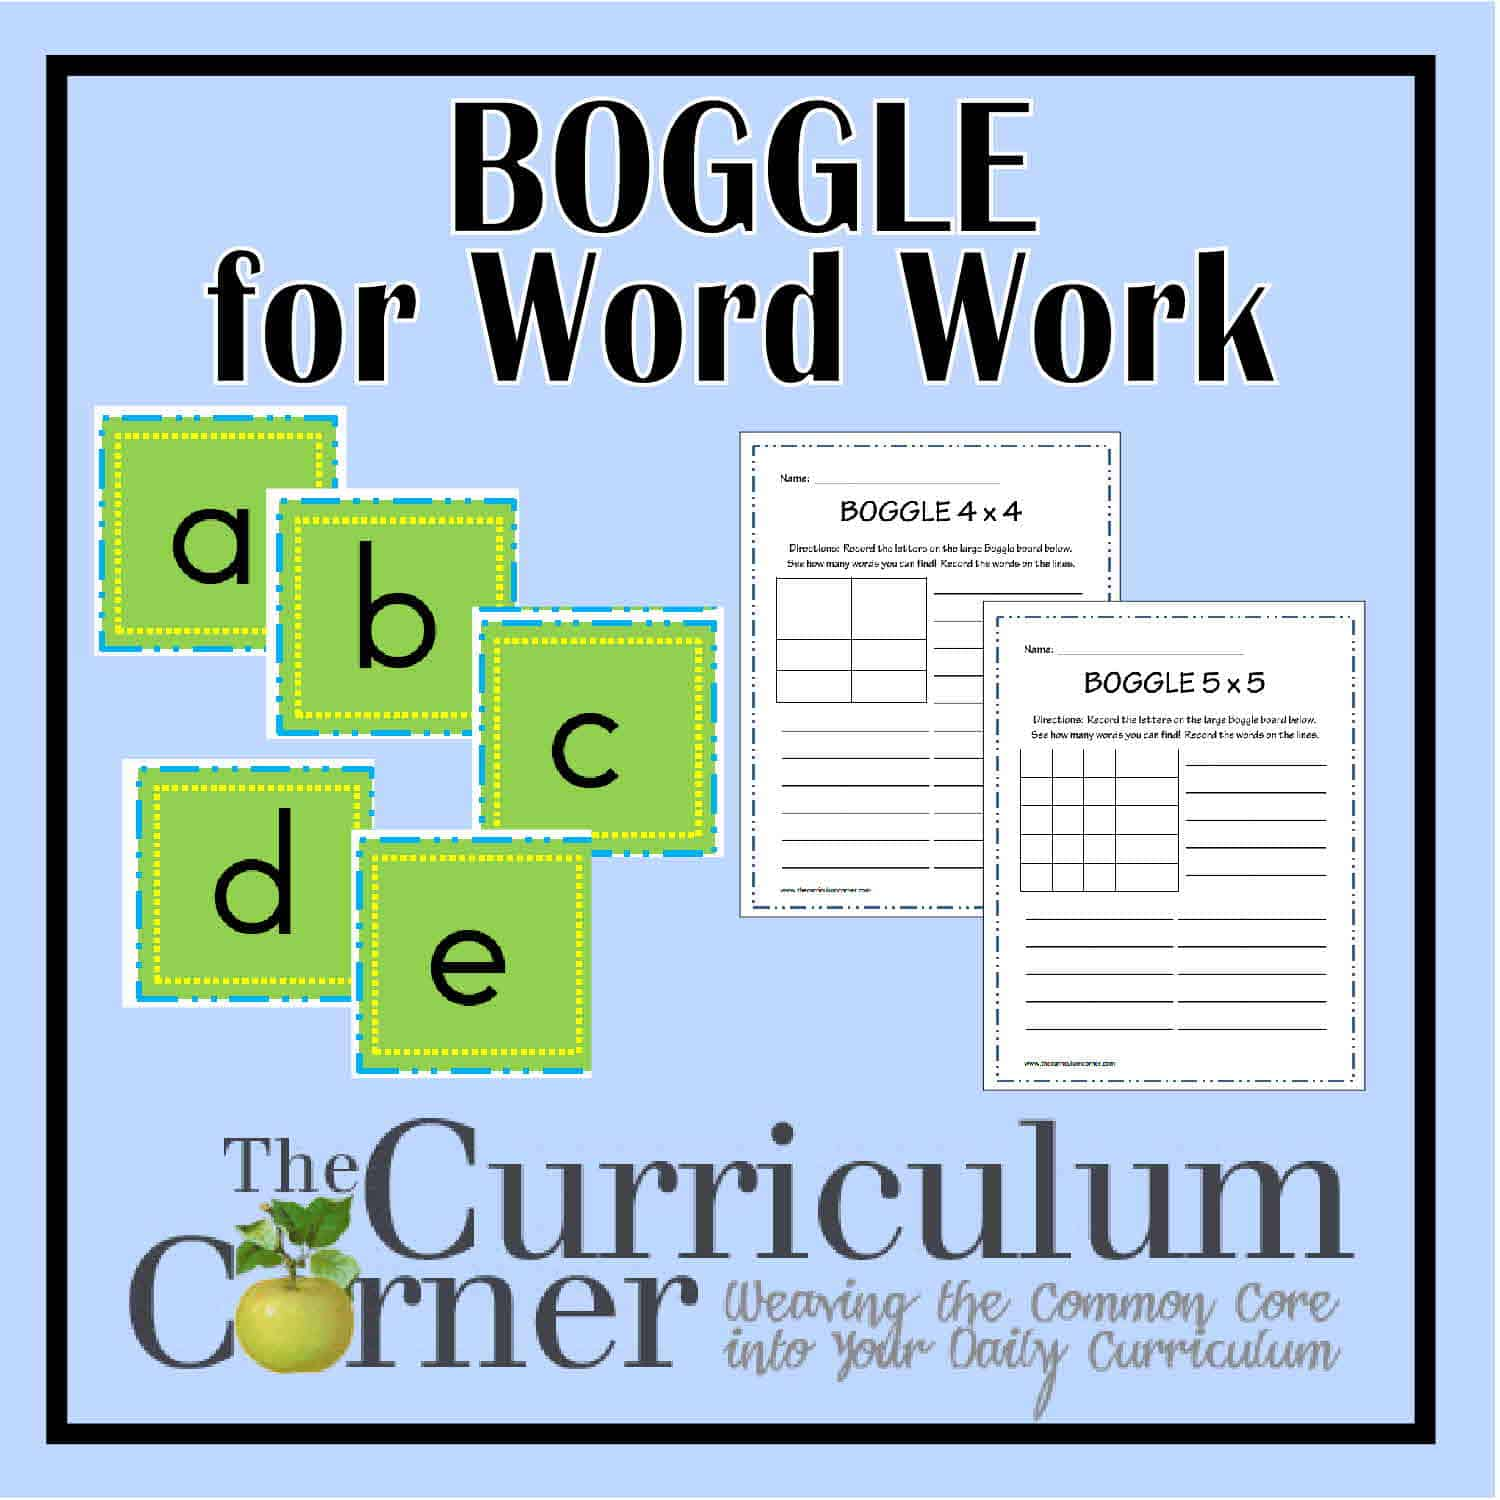 Boggle for Word Work Practice